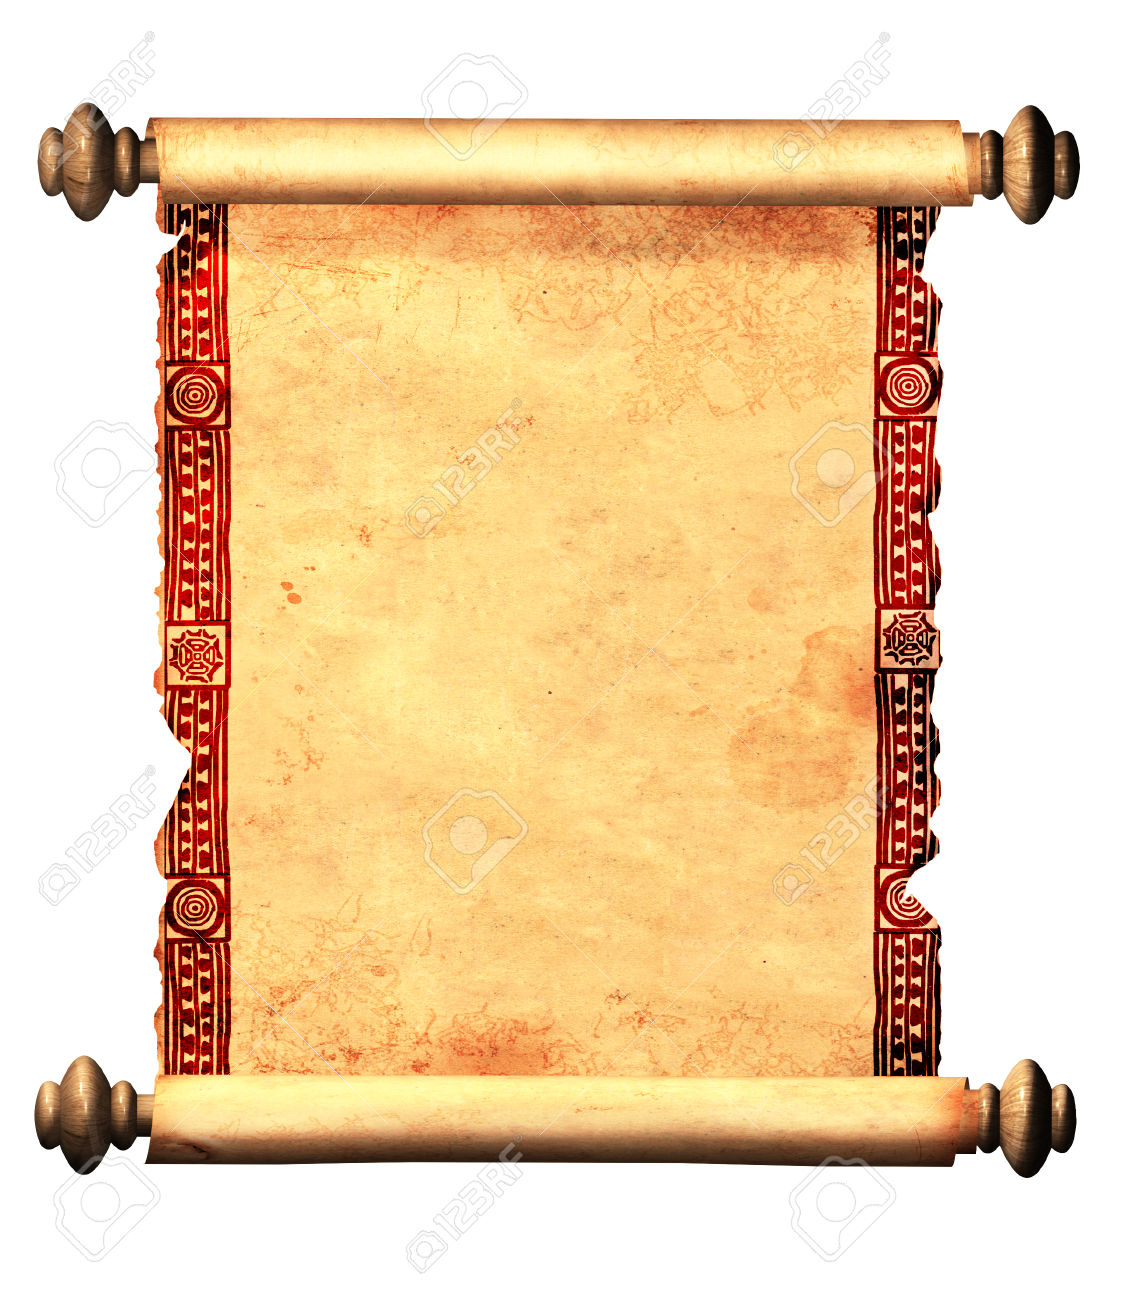 Parchment scroll clipart clipart free stock Old Paper Scroll Clipart | Free download best Old Paper ... clipart free stock